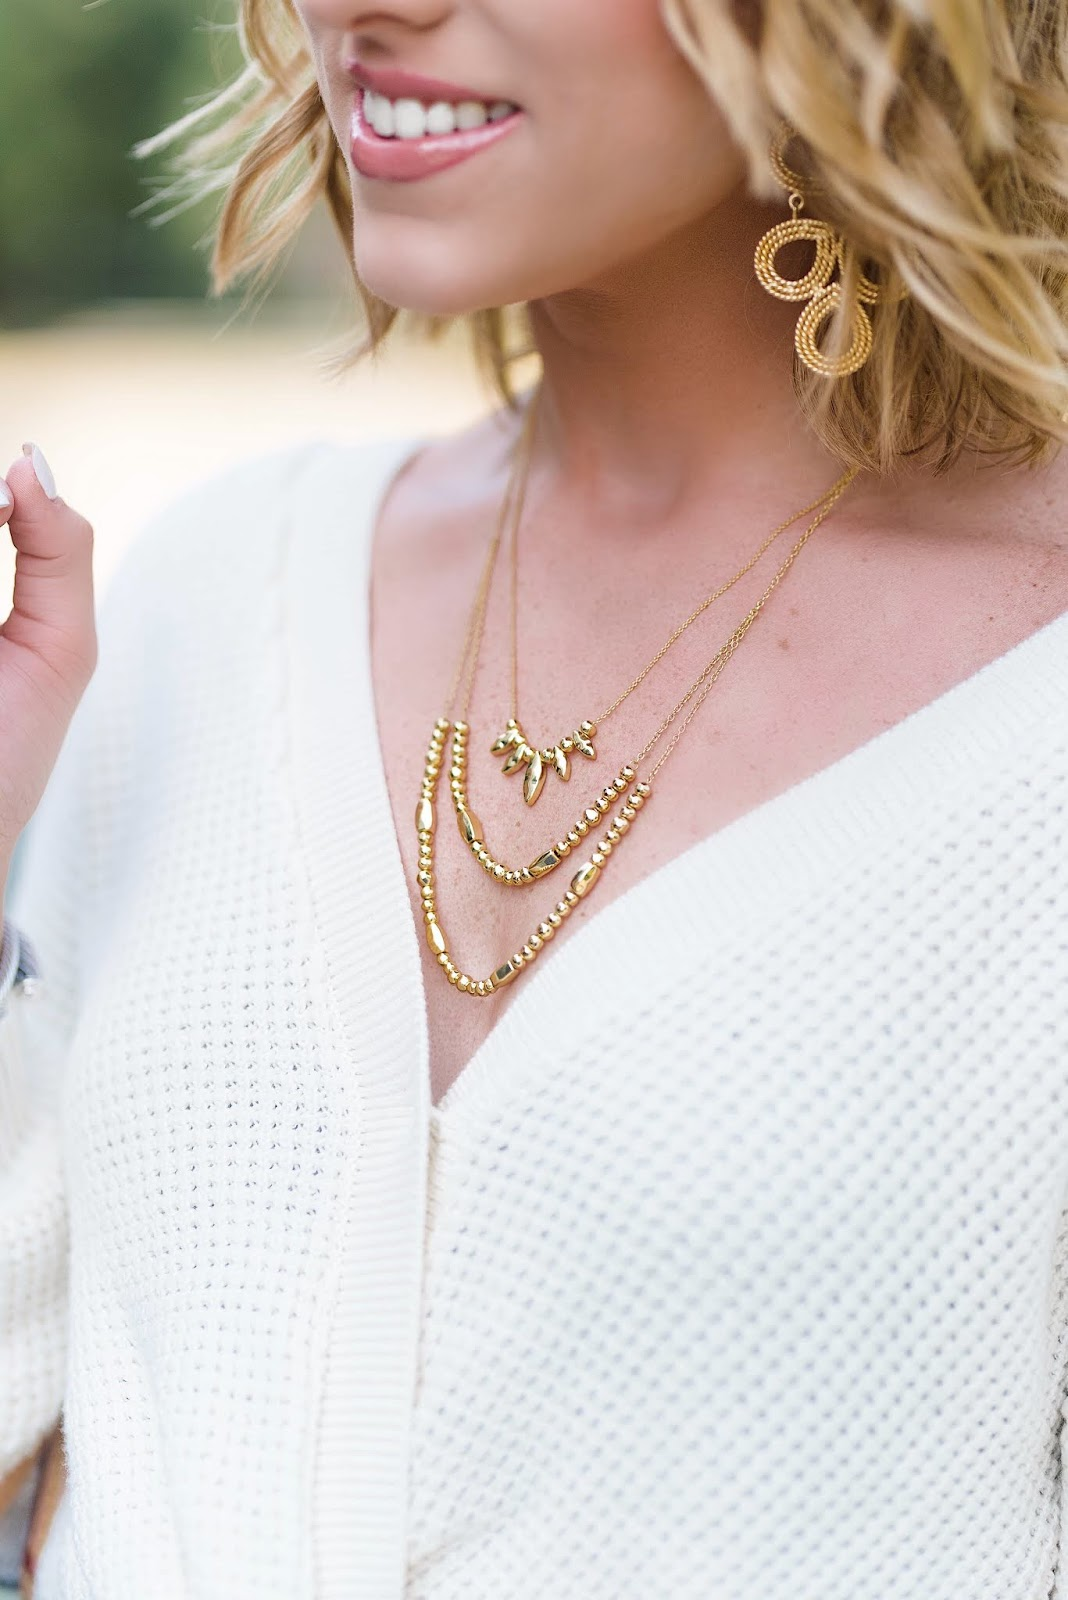 NSale Gorjana Necklaces - Something Delightful Blog